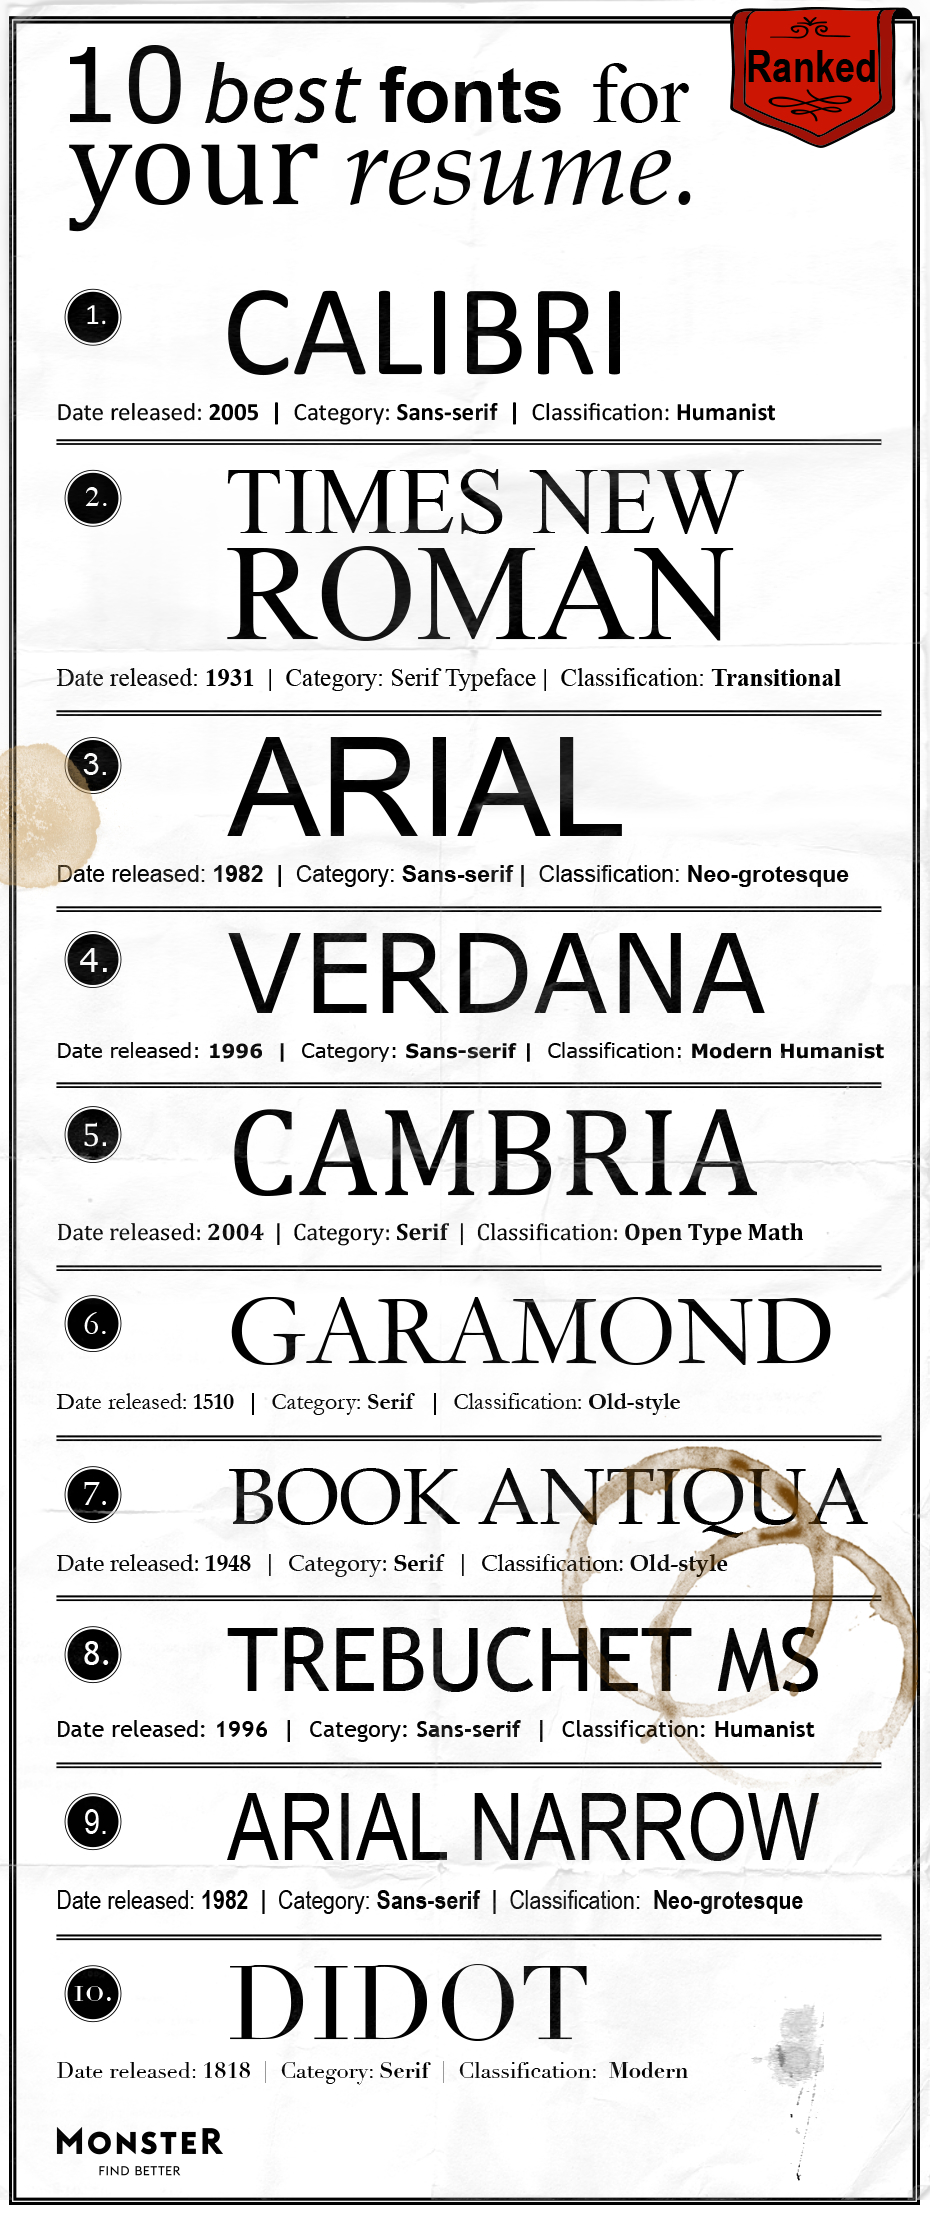 best font for resume monster size fonts ranked years of experience on international Resume Best Font Size For Resume 2020